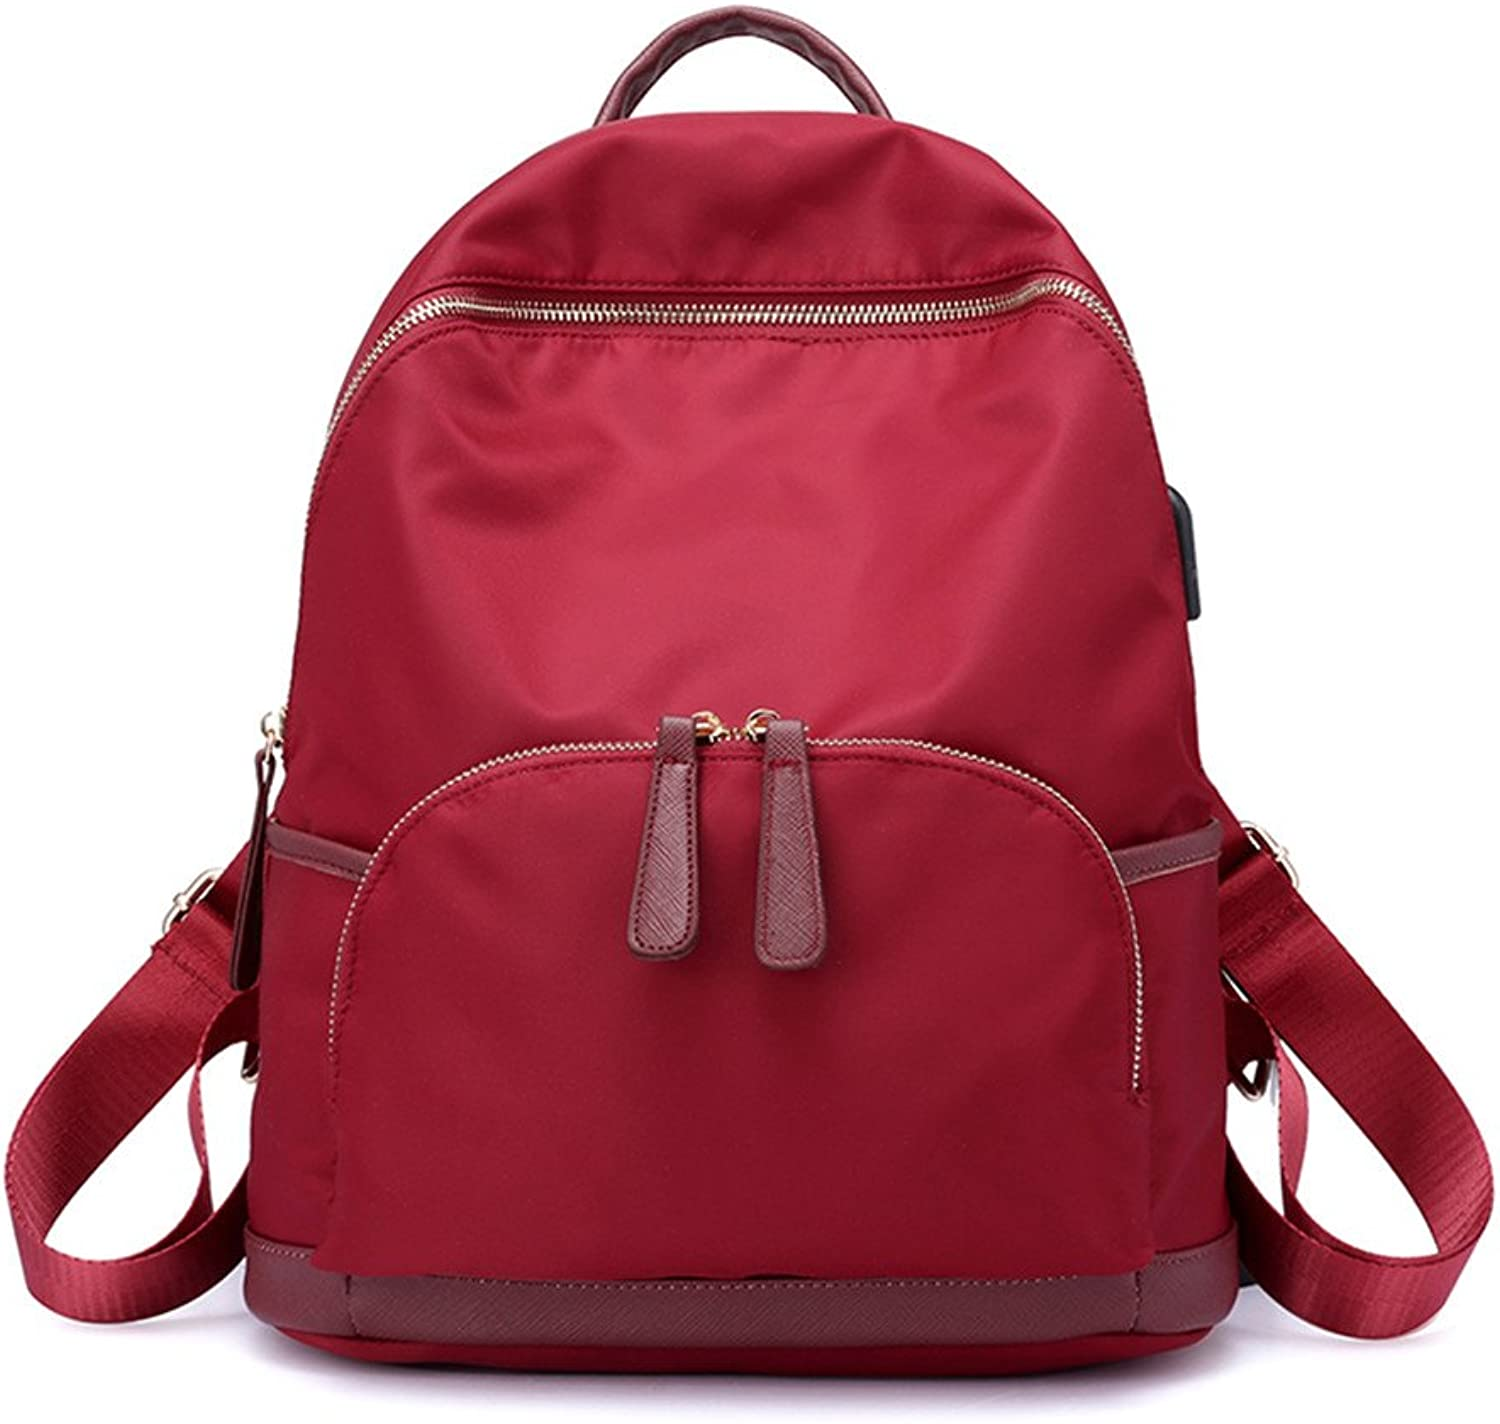 Large Capacity Double Shoulder Bag Female Leisure Oxford Cloth Canvas Bag Lady Backpack,Gules,35X29X16CM